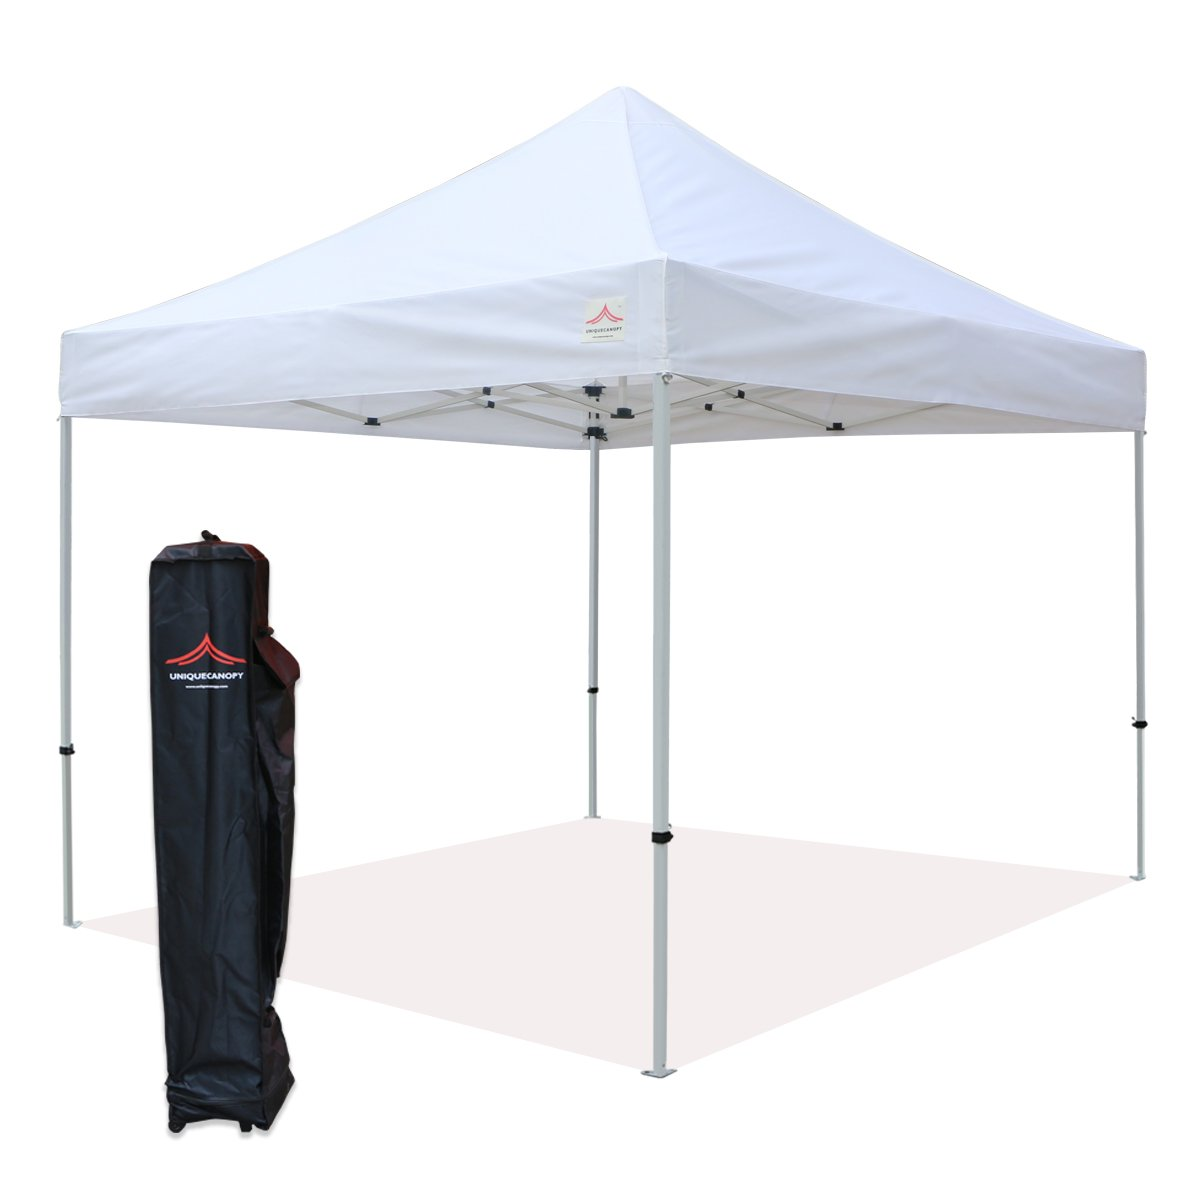 UNIQUECANOPY 10x10 Ez Pop up Canopy Tents for Parties Outdoor Portable Instant Folded Commercial Popup Shelter, with Wheeled Carrying Bag White